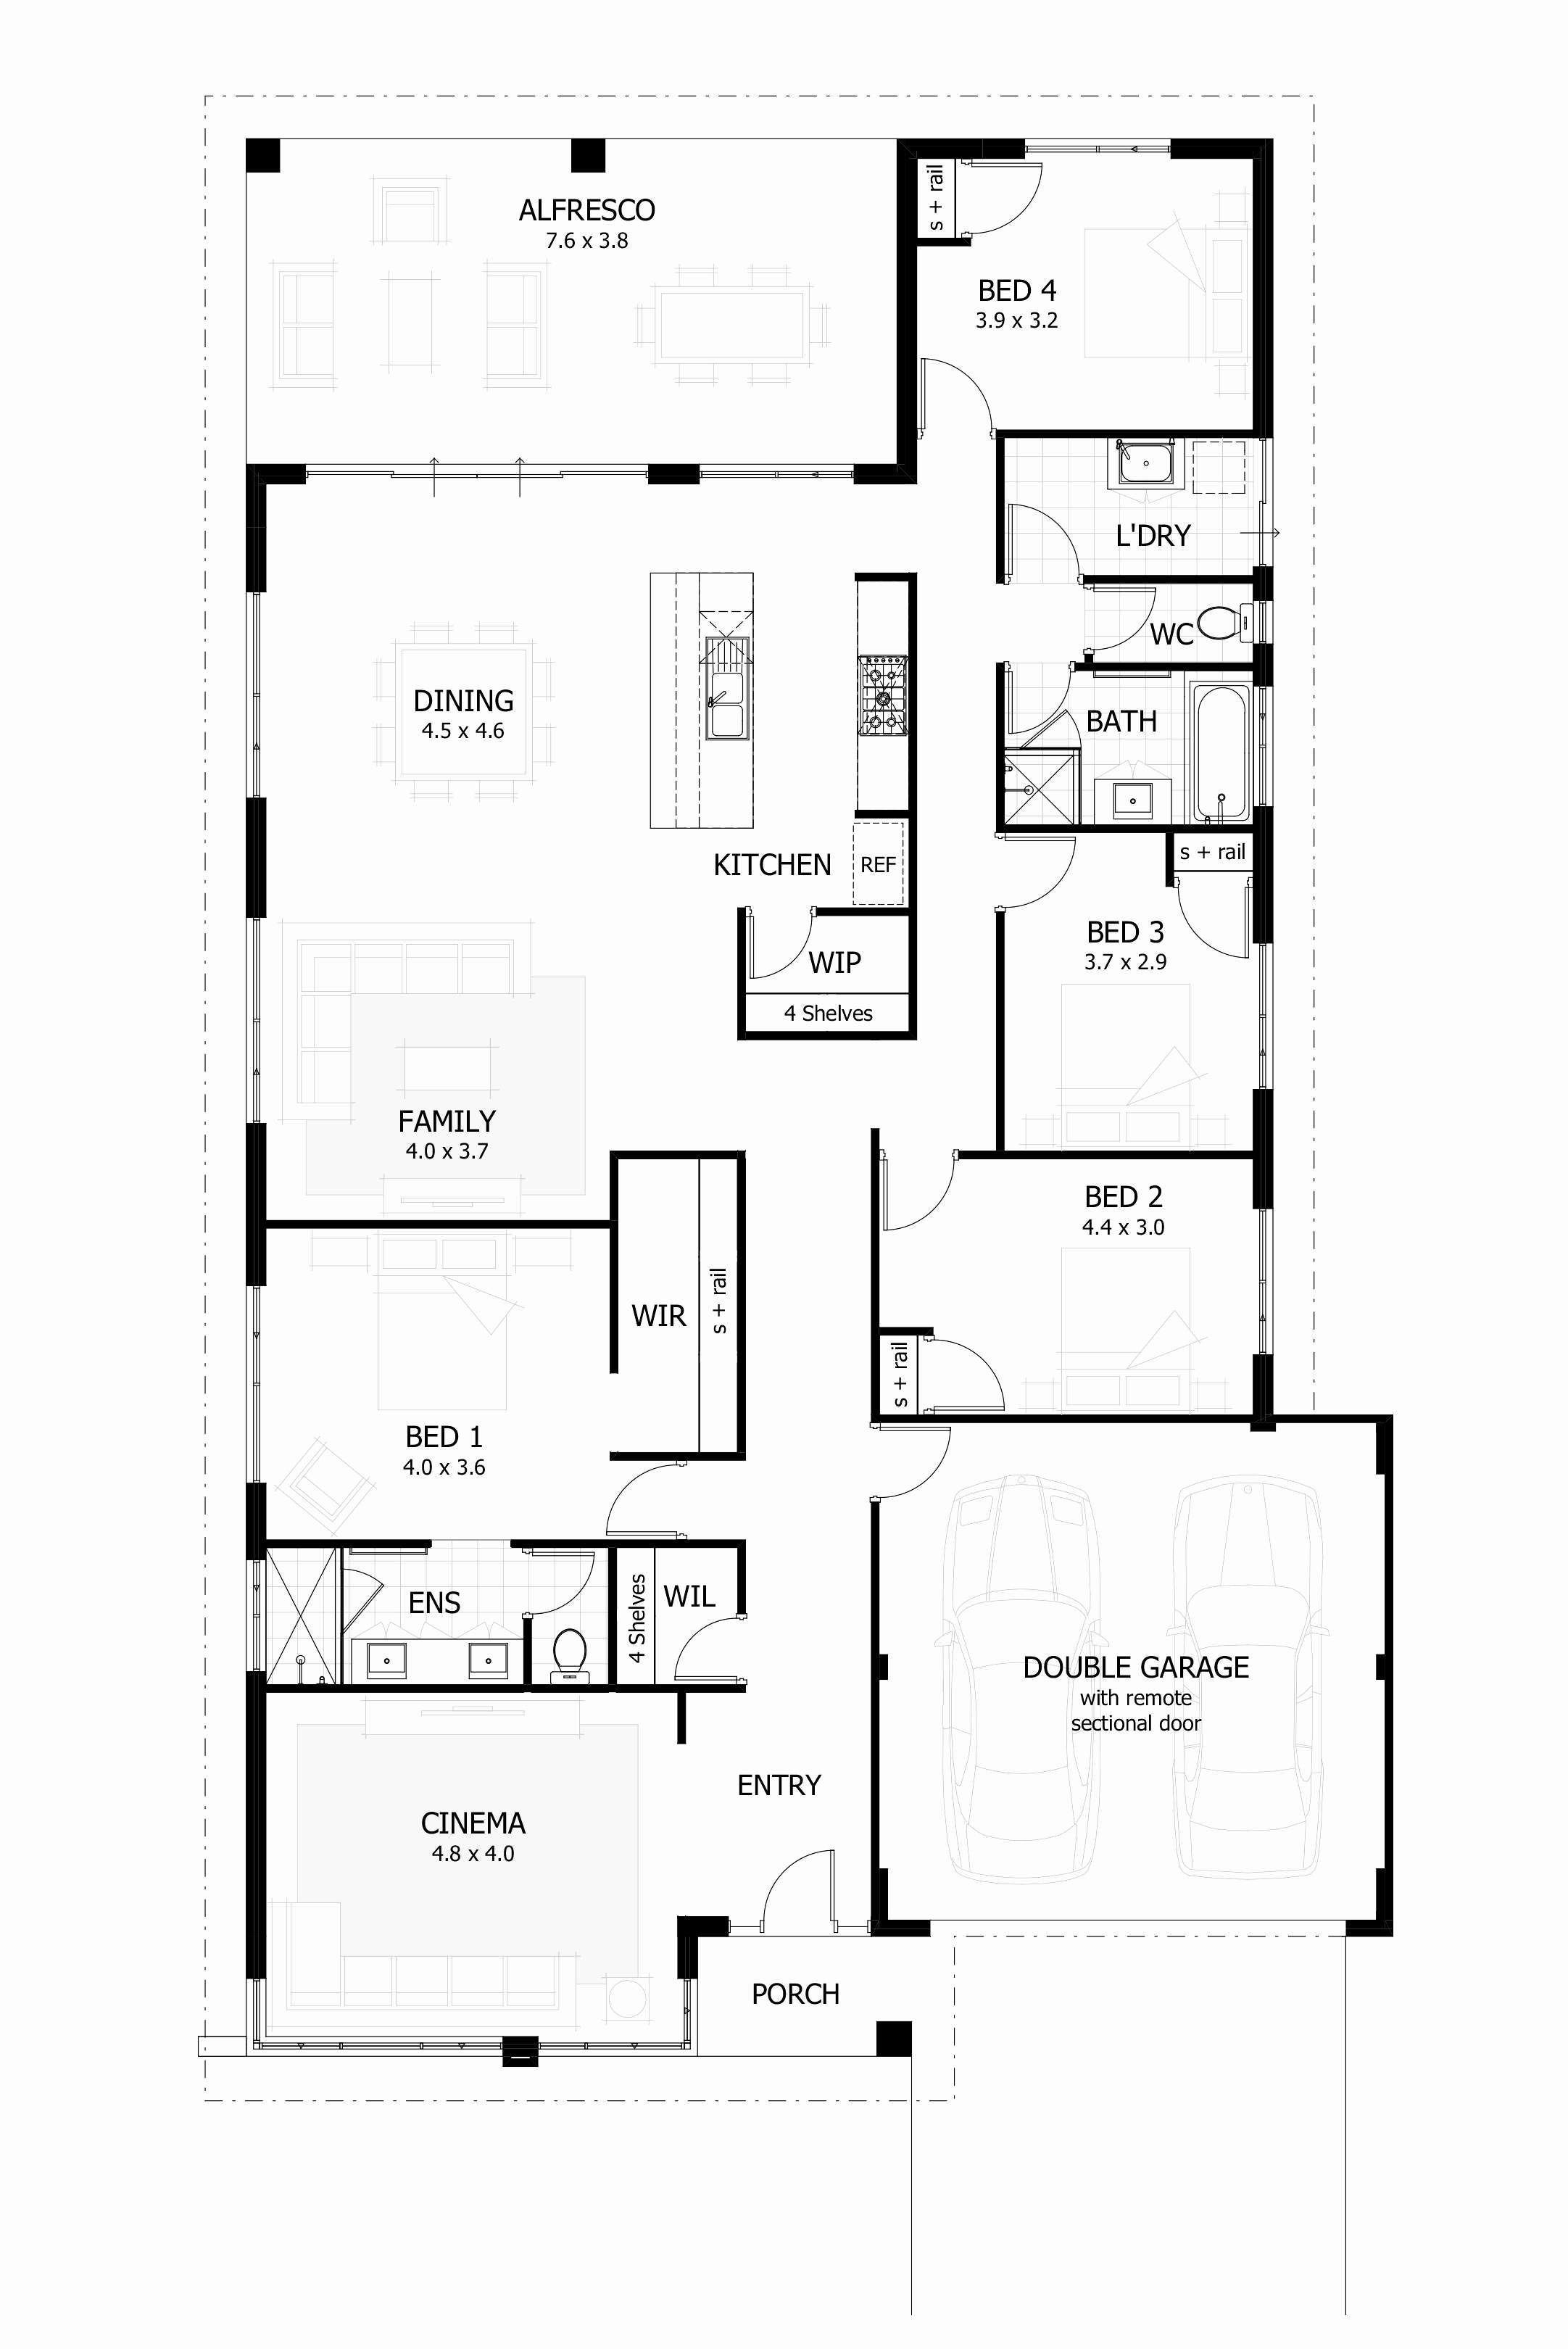 Super Modern Facade As Well As Minimal Entry Are First Thing That Orders Your Focus While You Re Approachi In 2020 Home Design Floor Plans Free House Plans House Plans